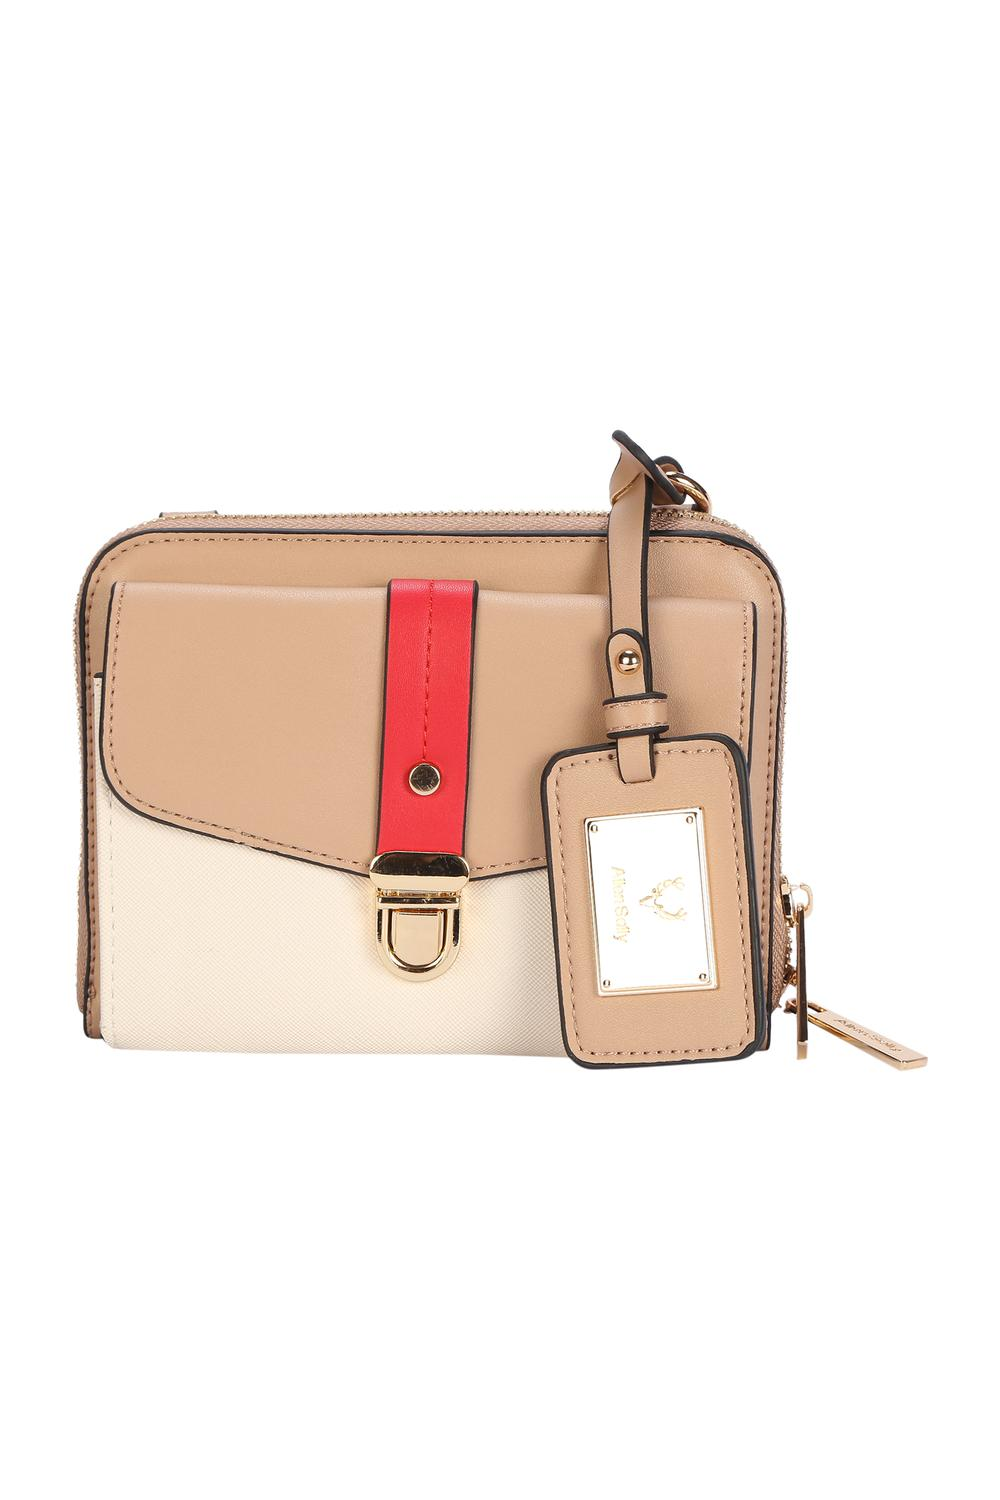 27f3fd8e3c Solly Fashion Accessories, Allen Solly Beige Clutch for Women at  Allensolly.com